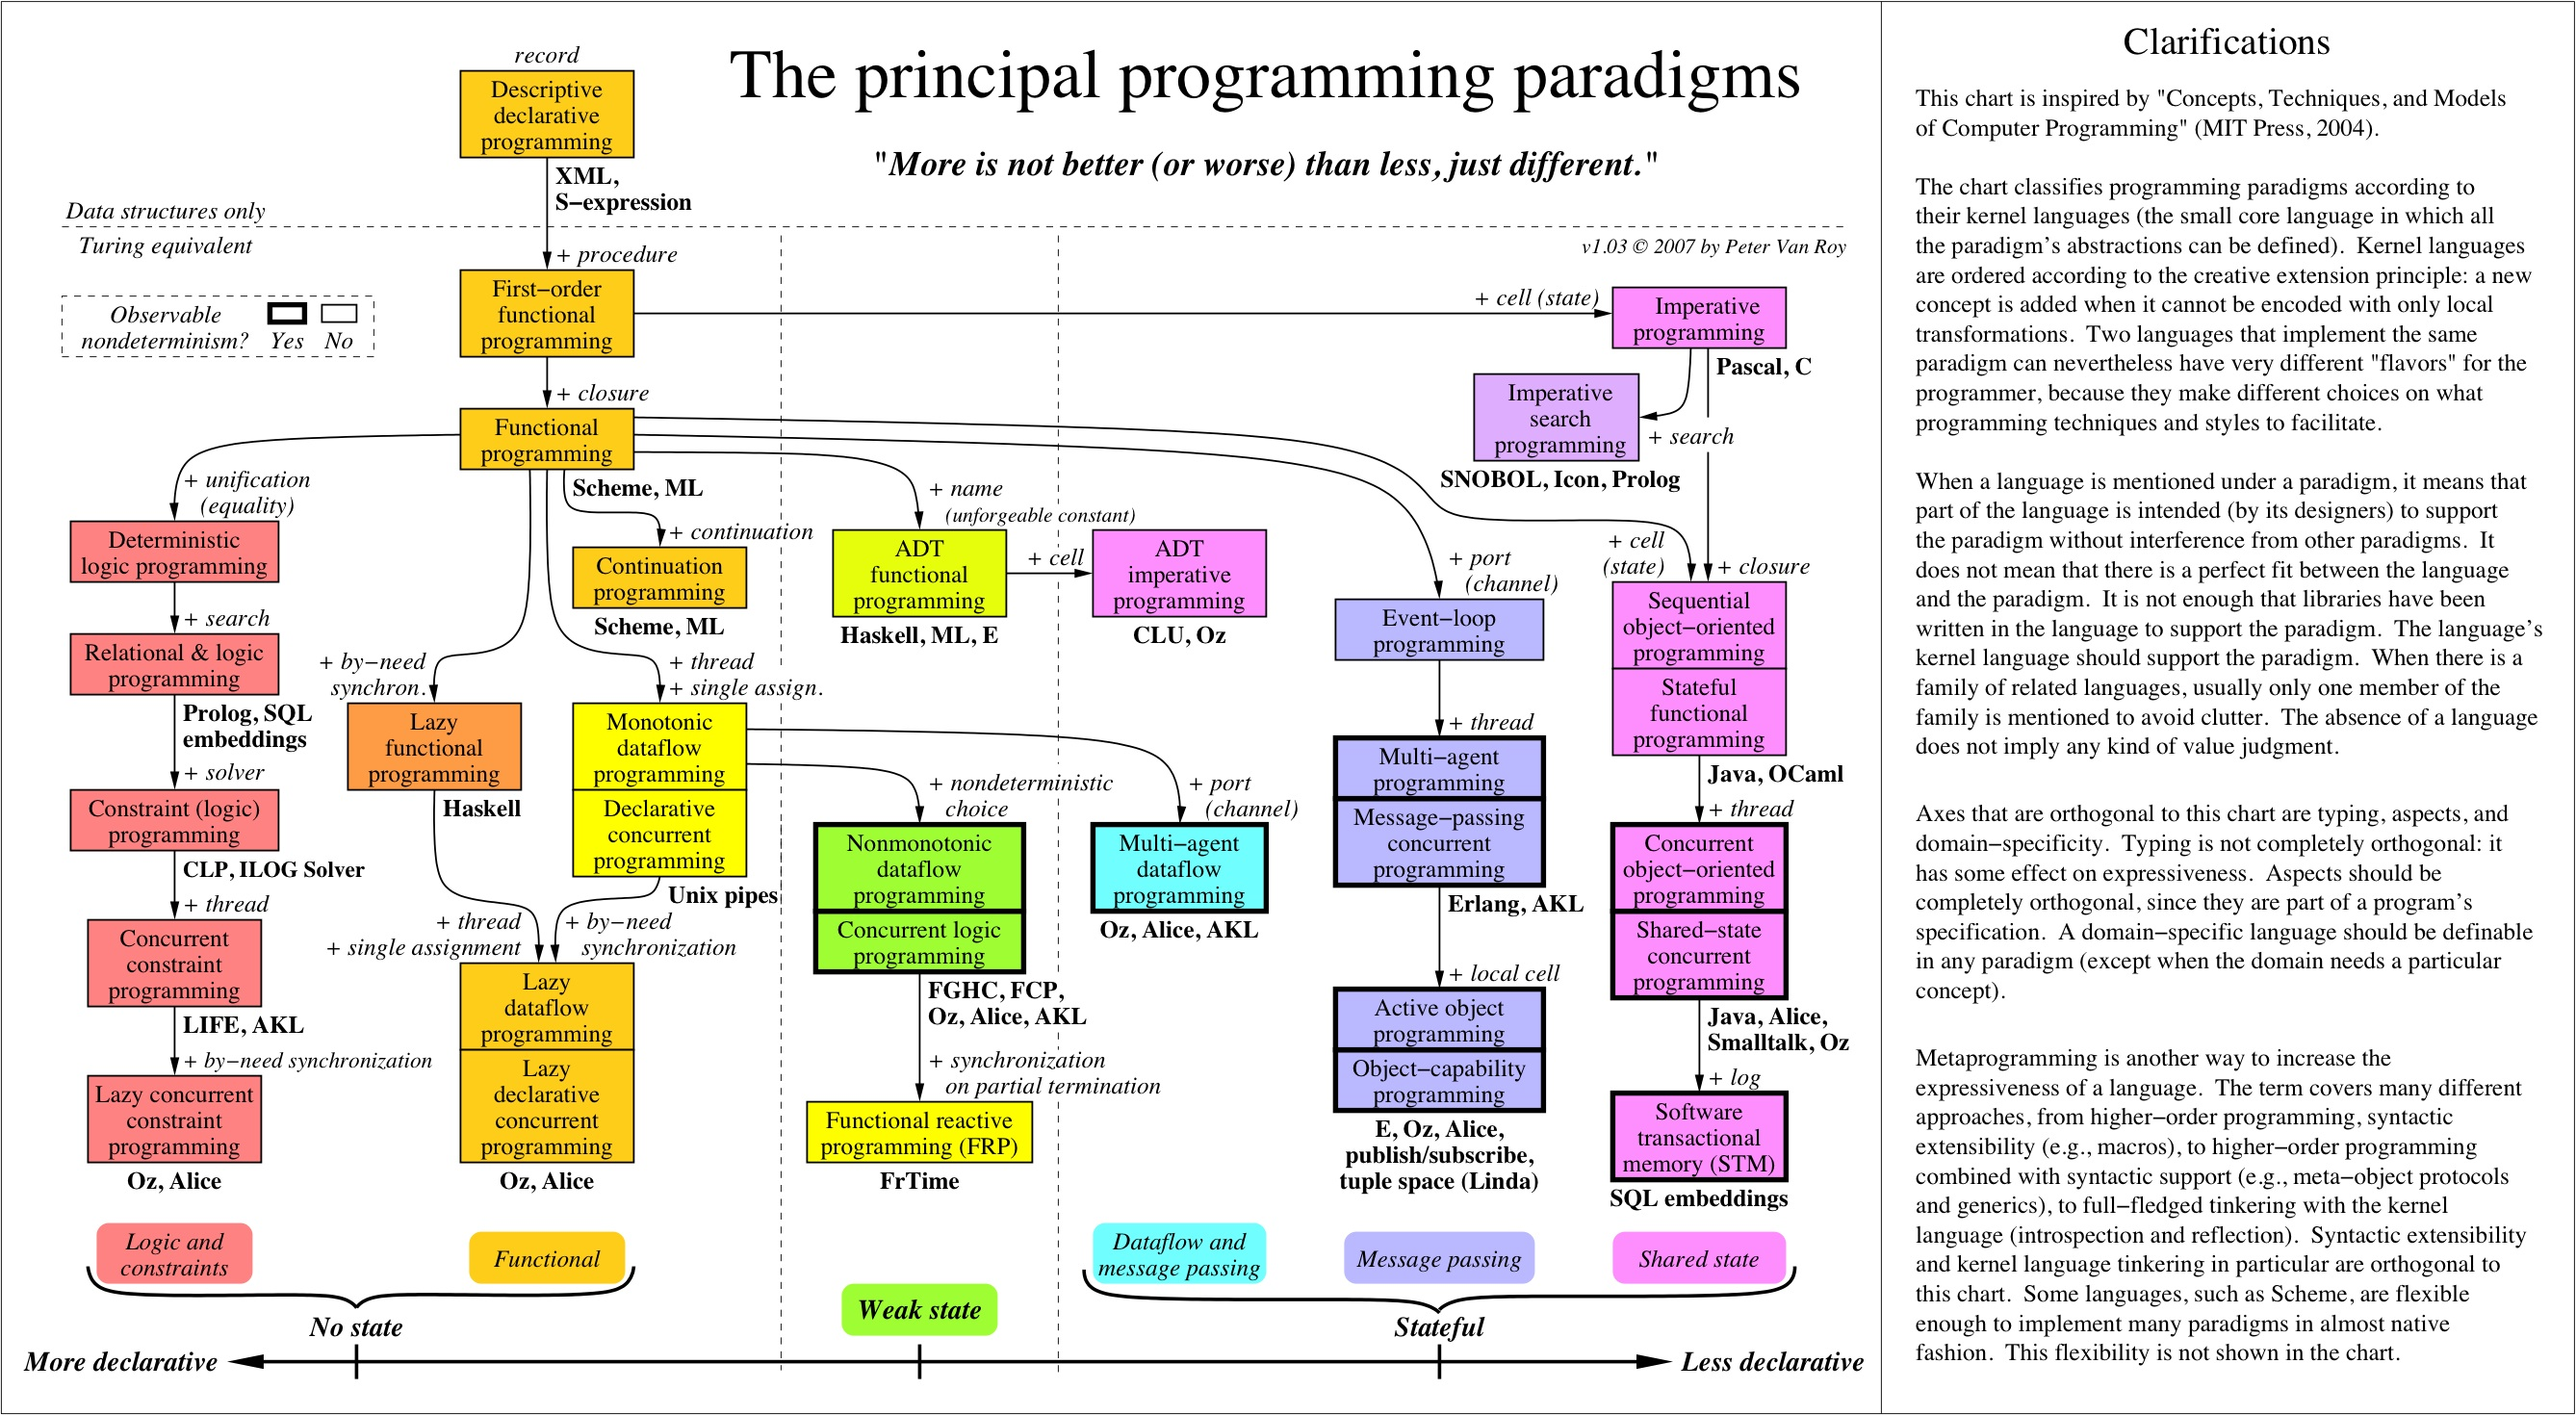 The principal programming paradigms